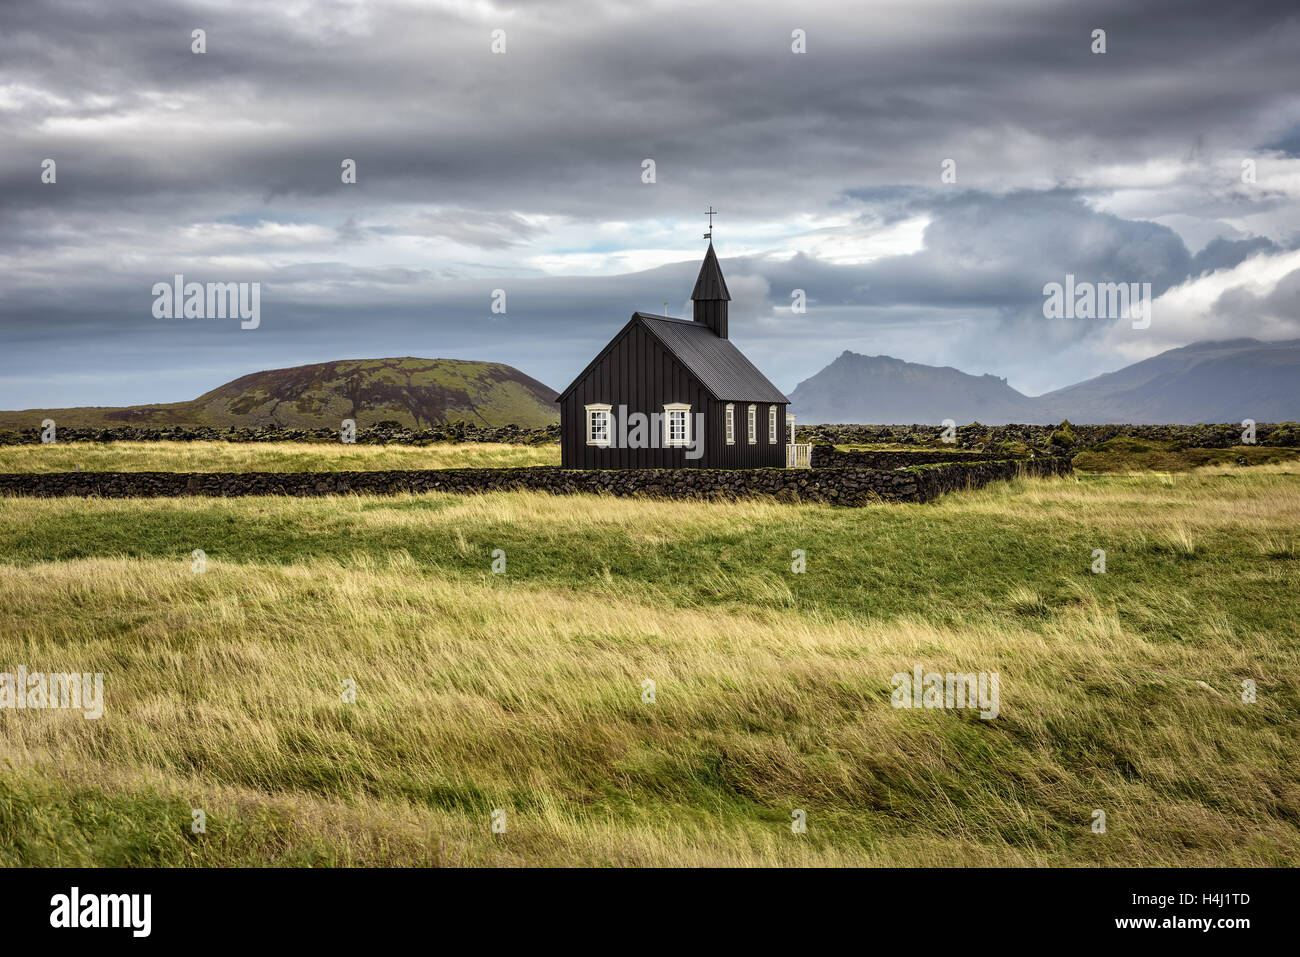 Scenery of black wooden church of Budir in Iceland with the pasture and mountains in the background - Stock Image